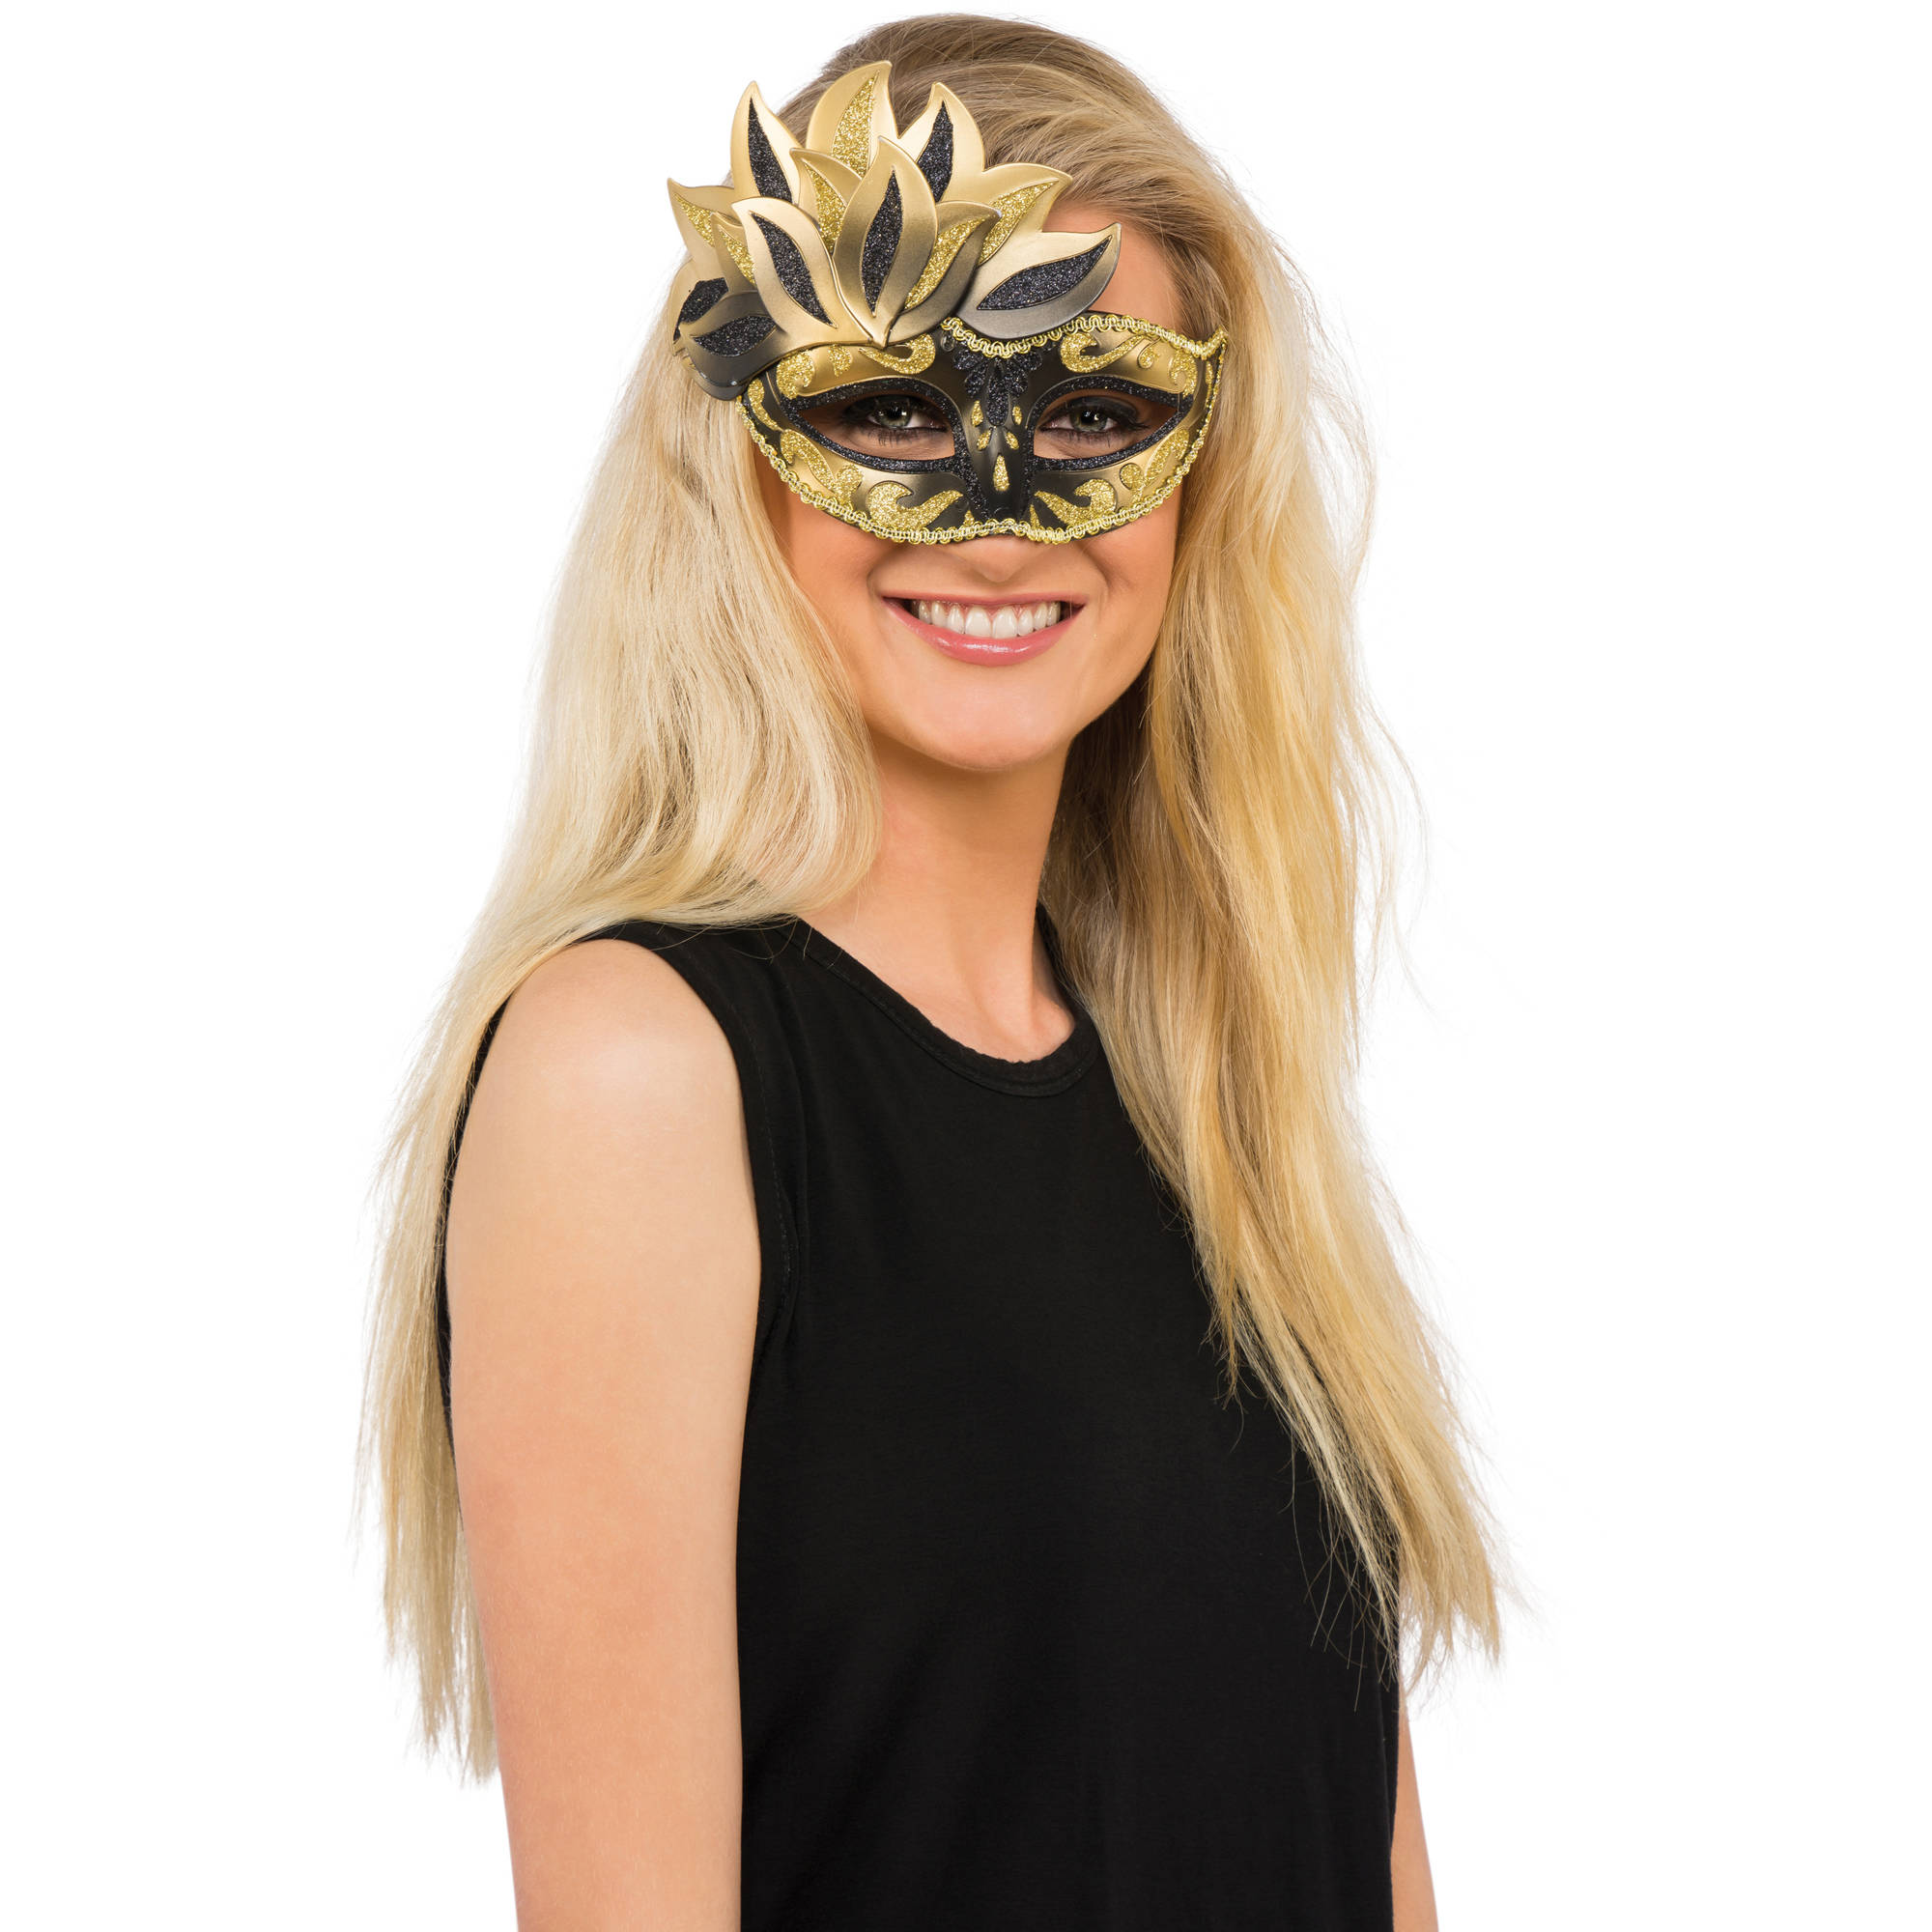 Black And Gold Carnival Mask Halloween Costume Accessory